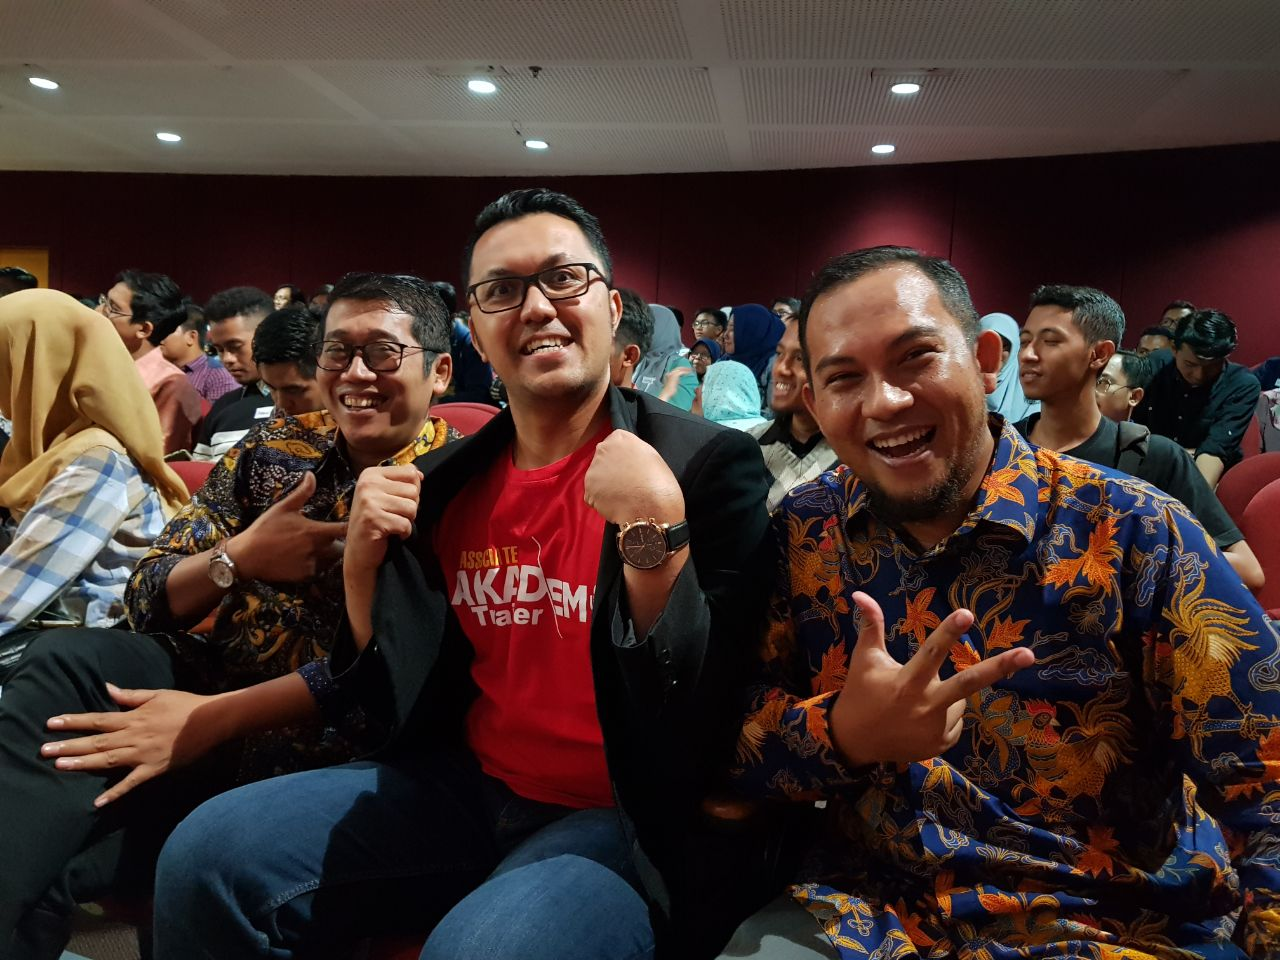 Ubah Indonesia Dengan Bicara - CORPORATE TRAINING INDONESIA